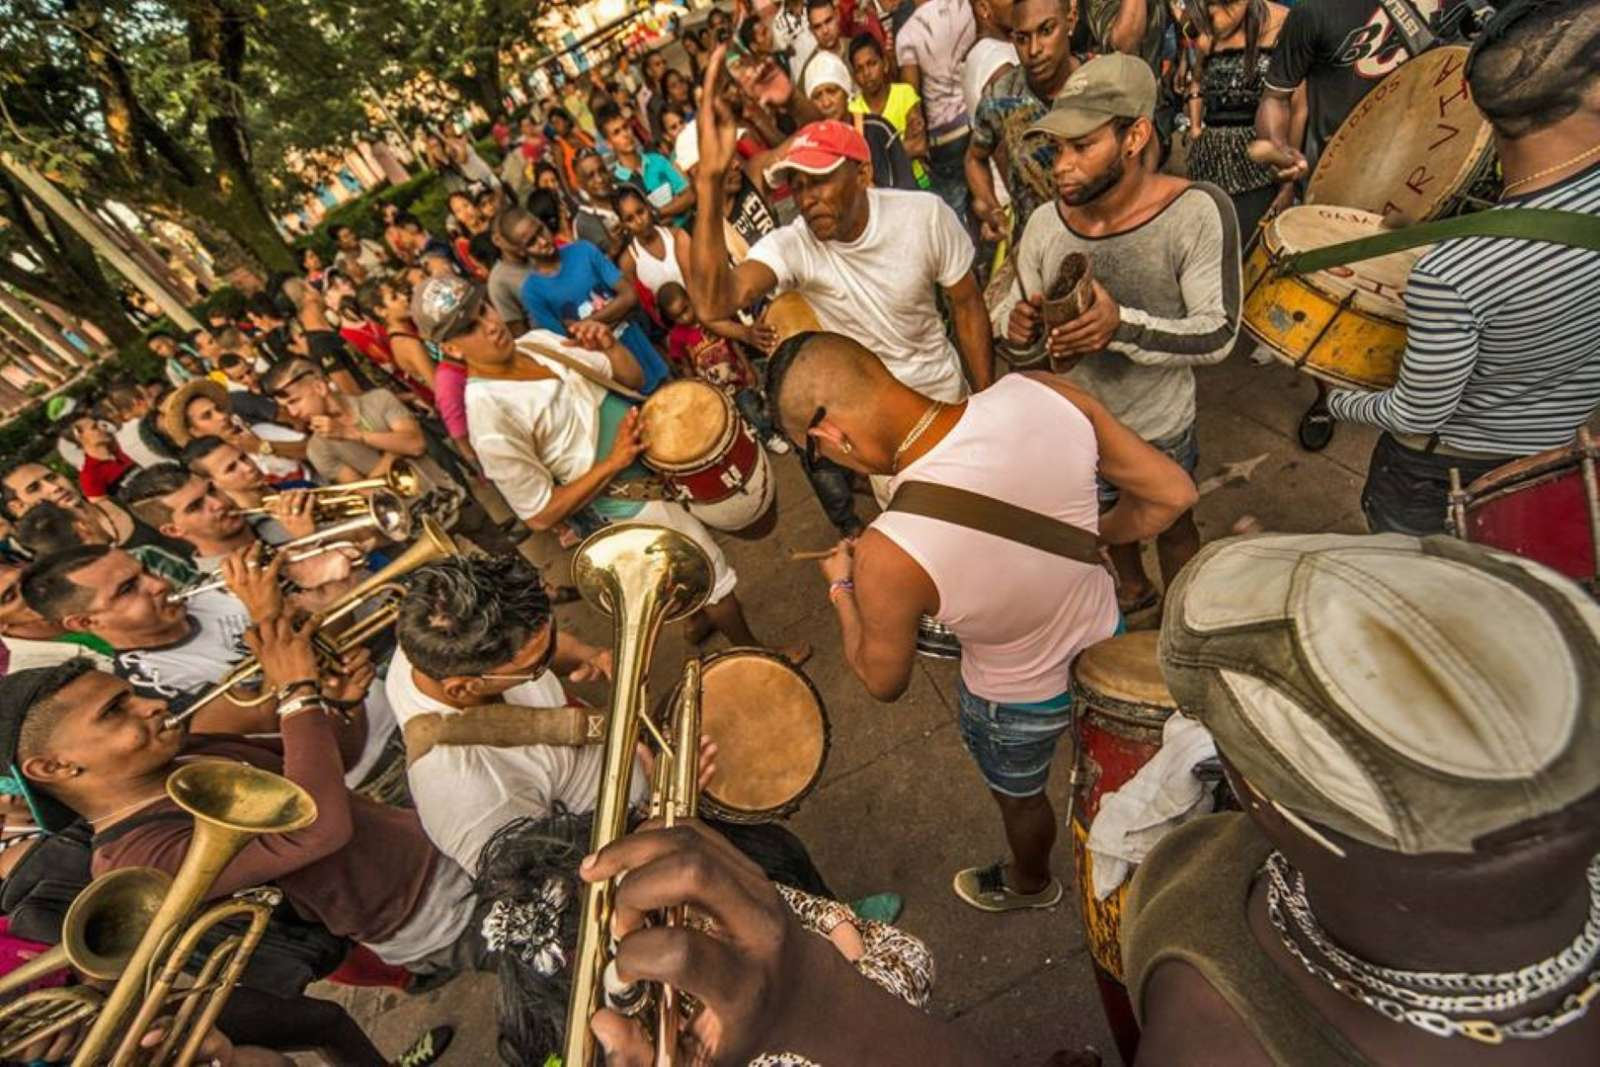 A band at Las Parrandas in Remedios, Cuba